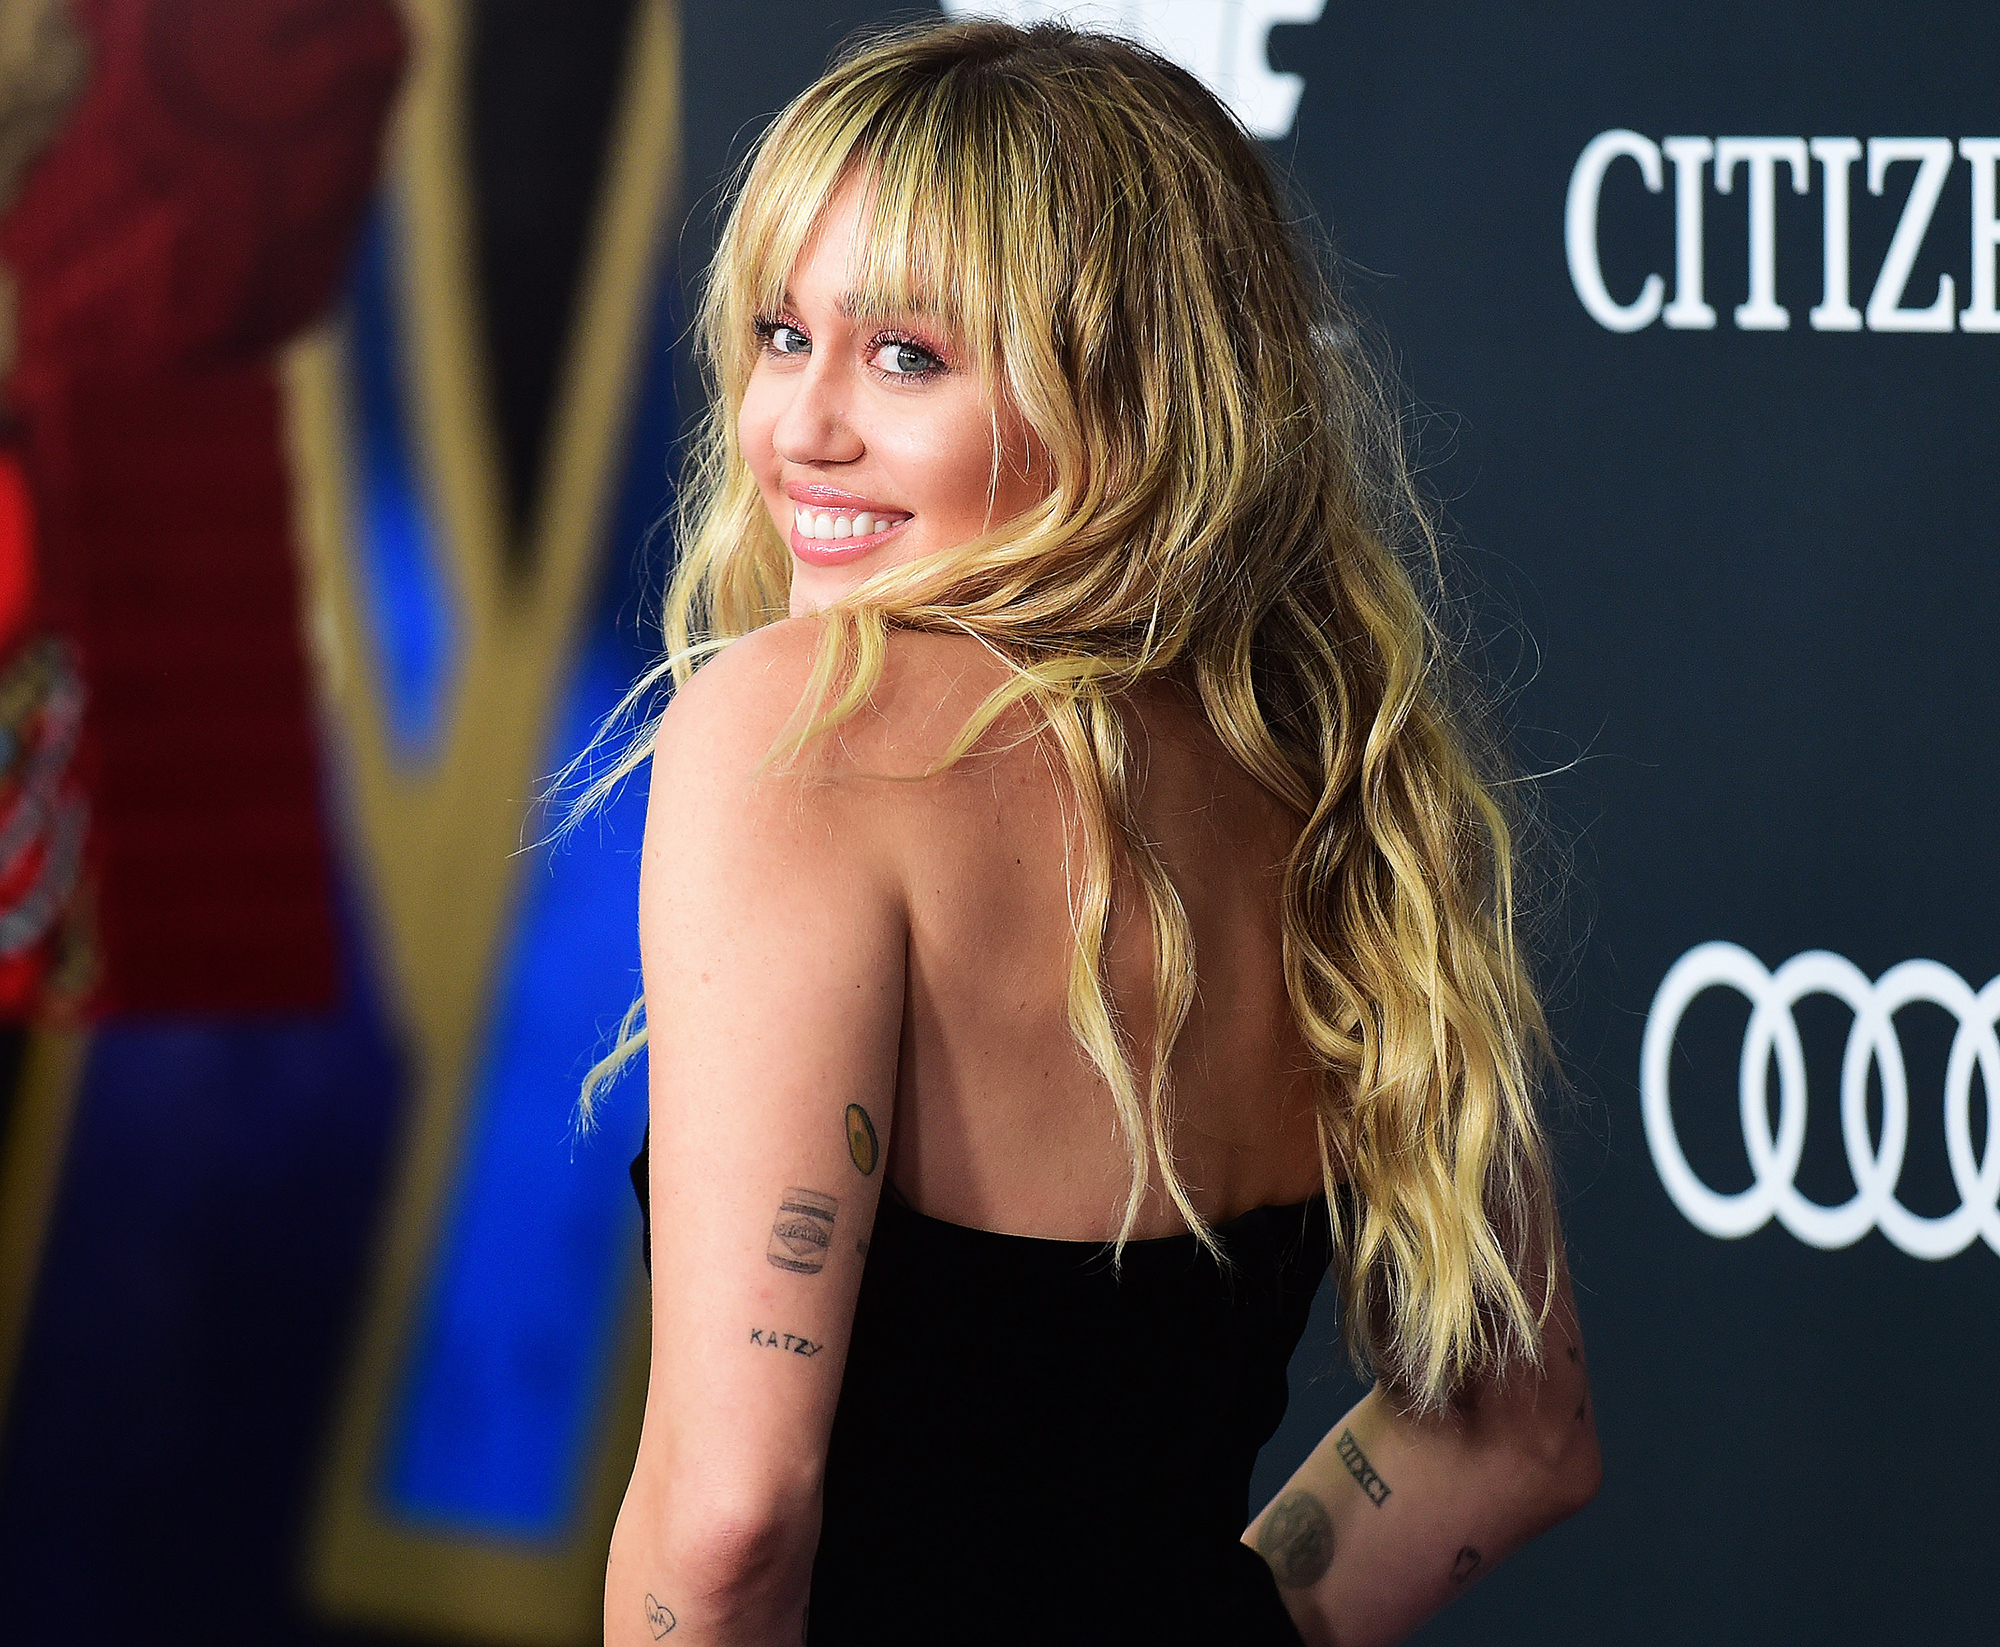 miley cyrus reveals she s been in love 3 times talks liam divorce miley cyrus reveals she s been in love